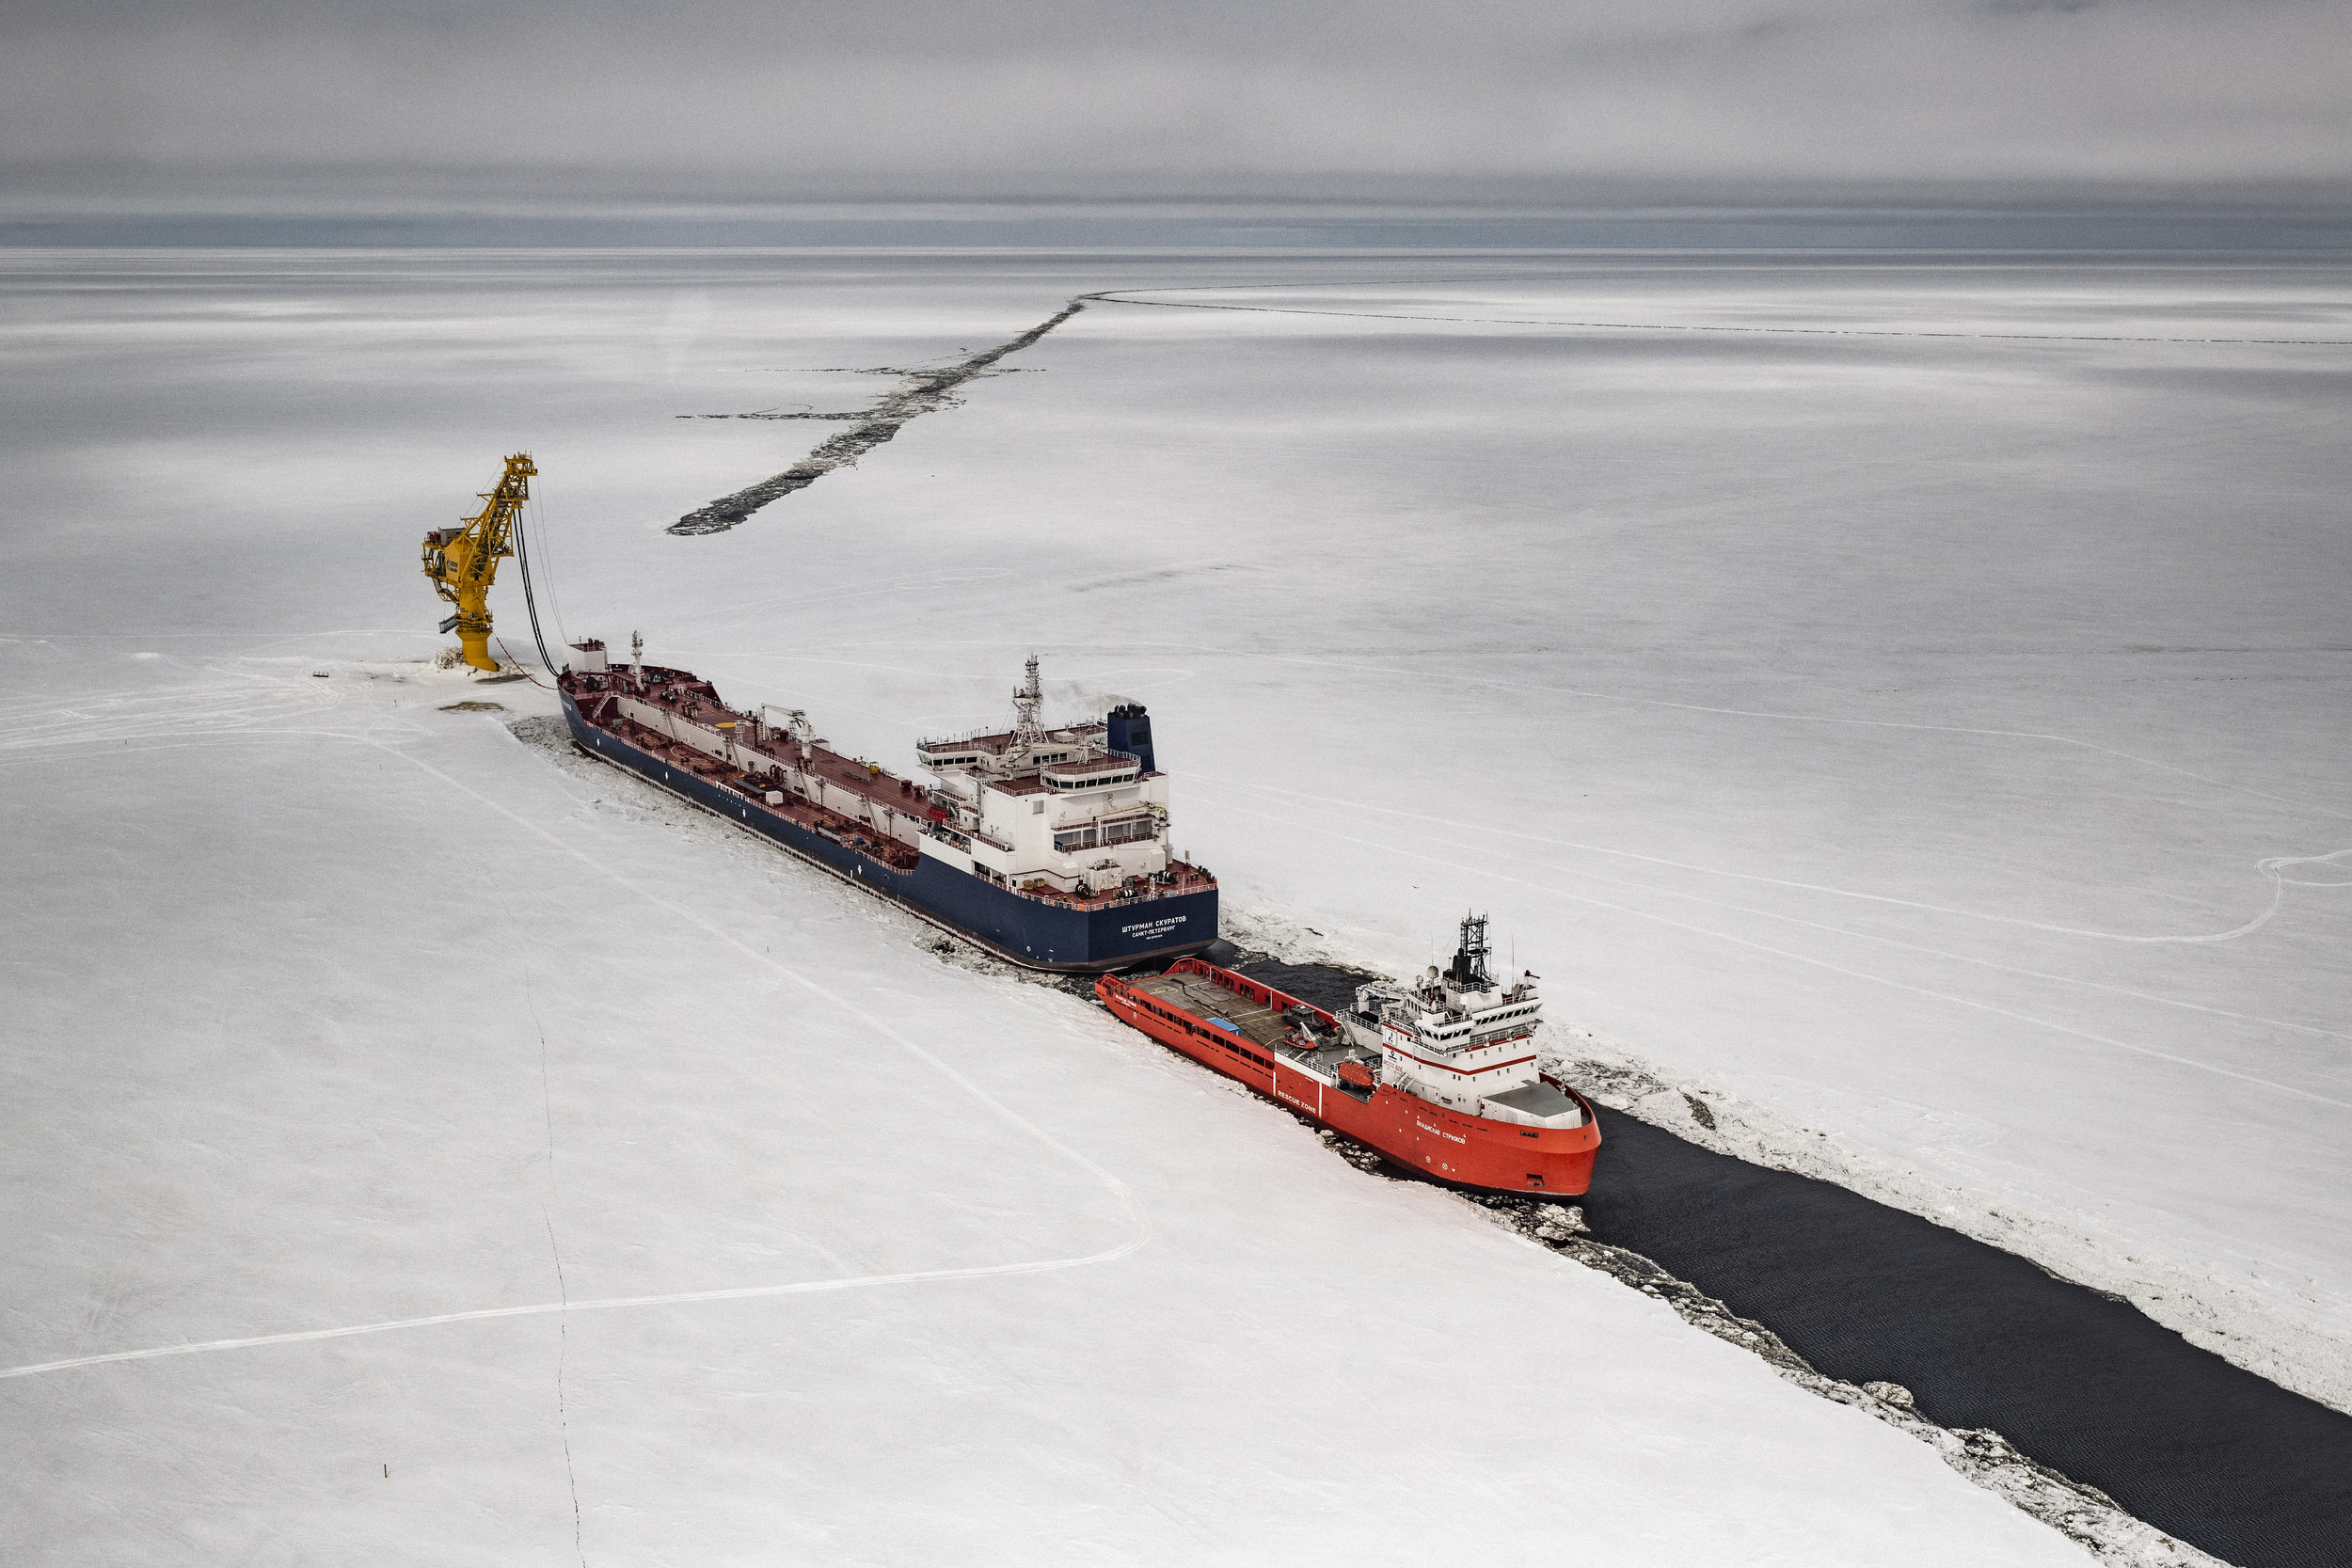 """Russia, Yamal Peninsula, Cape Kemenny, May 2018Gazprom Neft's """"Arctic Gate"""" terminal in Gulf of Ob  The Novoportovskoye is one of the biggest oil fields in the Yamal Peninsula. The field is located 30 km from the coast of the Ob bay, and oil is transported by pipeline to Cape Kamenny where a terminal facility has been developed. The company Gazprom Neft is operating the Novy Port project, which is built to be able to deliver up to eight million tons of oil per year.  A fleet of six tankers are being built for the Novy Port. The first vessels of the new fleet, the �Shturman Albanov� and the �Shturman Malygin� were put on the water in early 2016. The third fleet tanker, the ?Shturman Ovtsyn? set course for the history books when it in mid-winter 2017 left the yard of the Samsung Heavy Industries in South Korea, made it through the Bering Strait and sailed all the way to Yamal. Later, also the �Shturman Shcherbinin� and the �Shturman Koshelev� were built.Yuri Kozyrev / NOOR for Carmignac Foundation"""